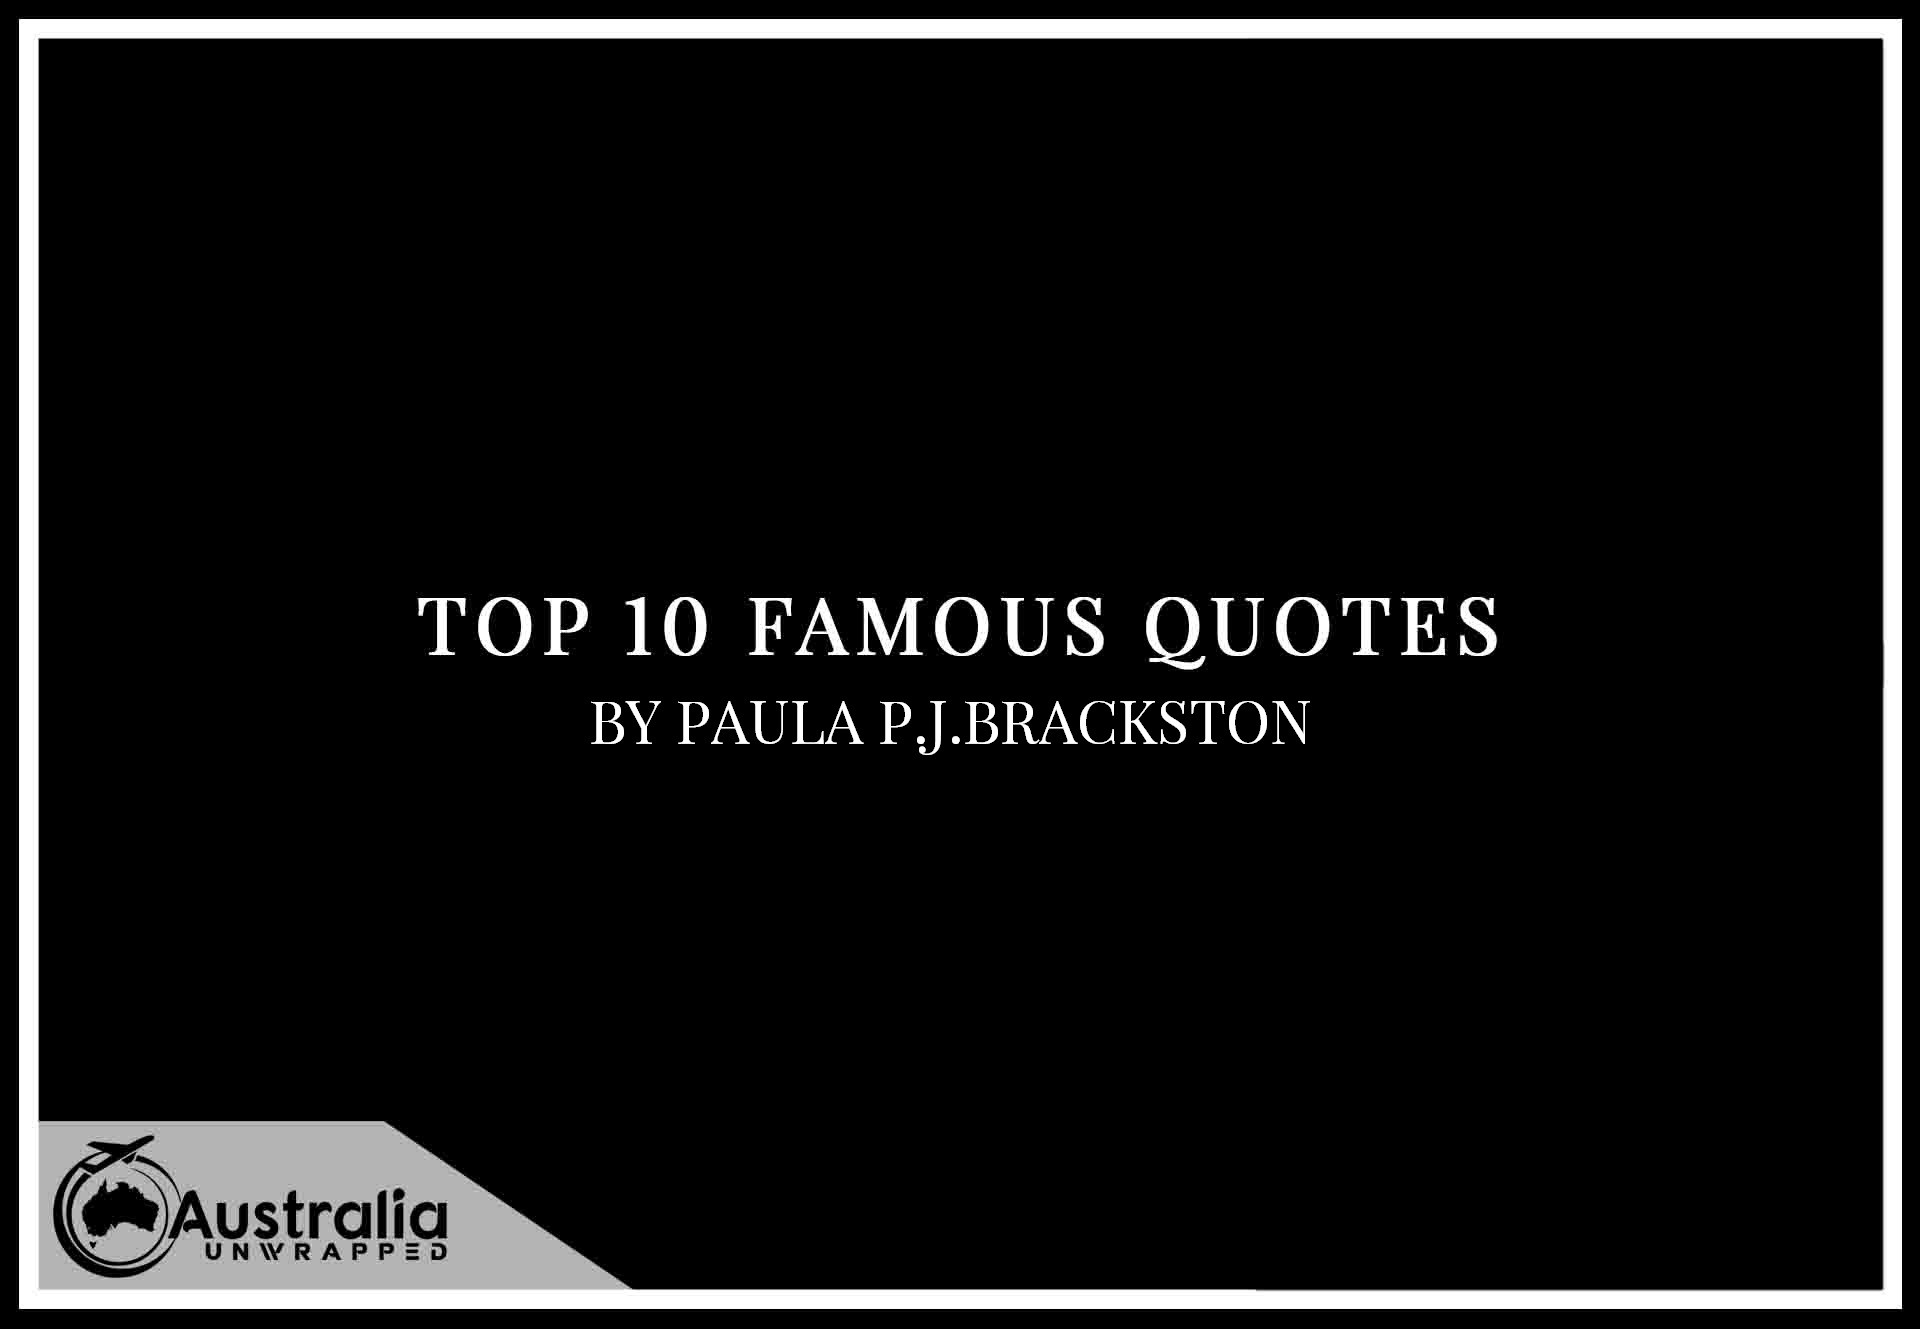 Top 10 Famous Quotes by Author Paula Brackston